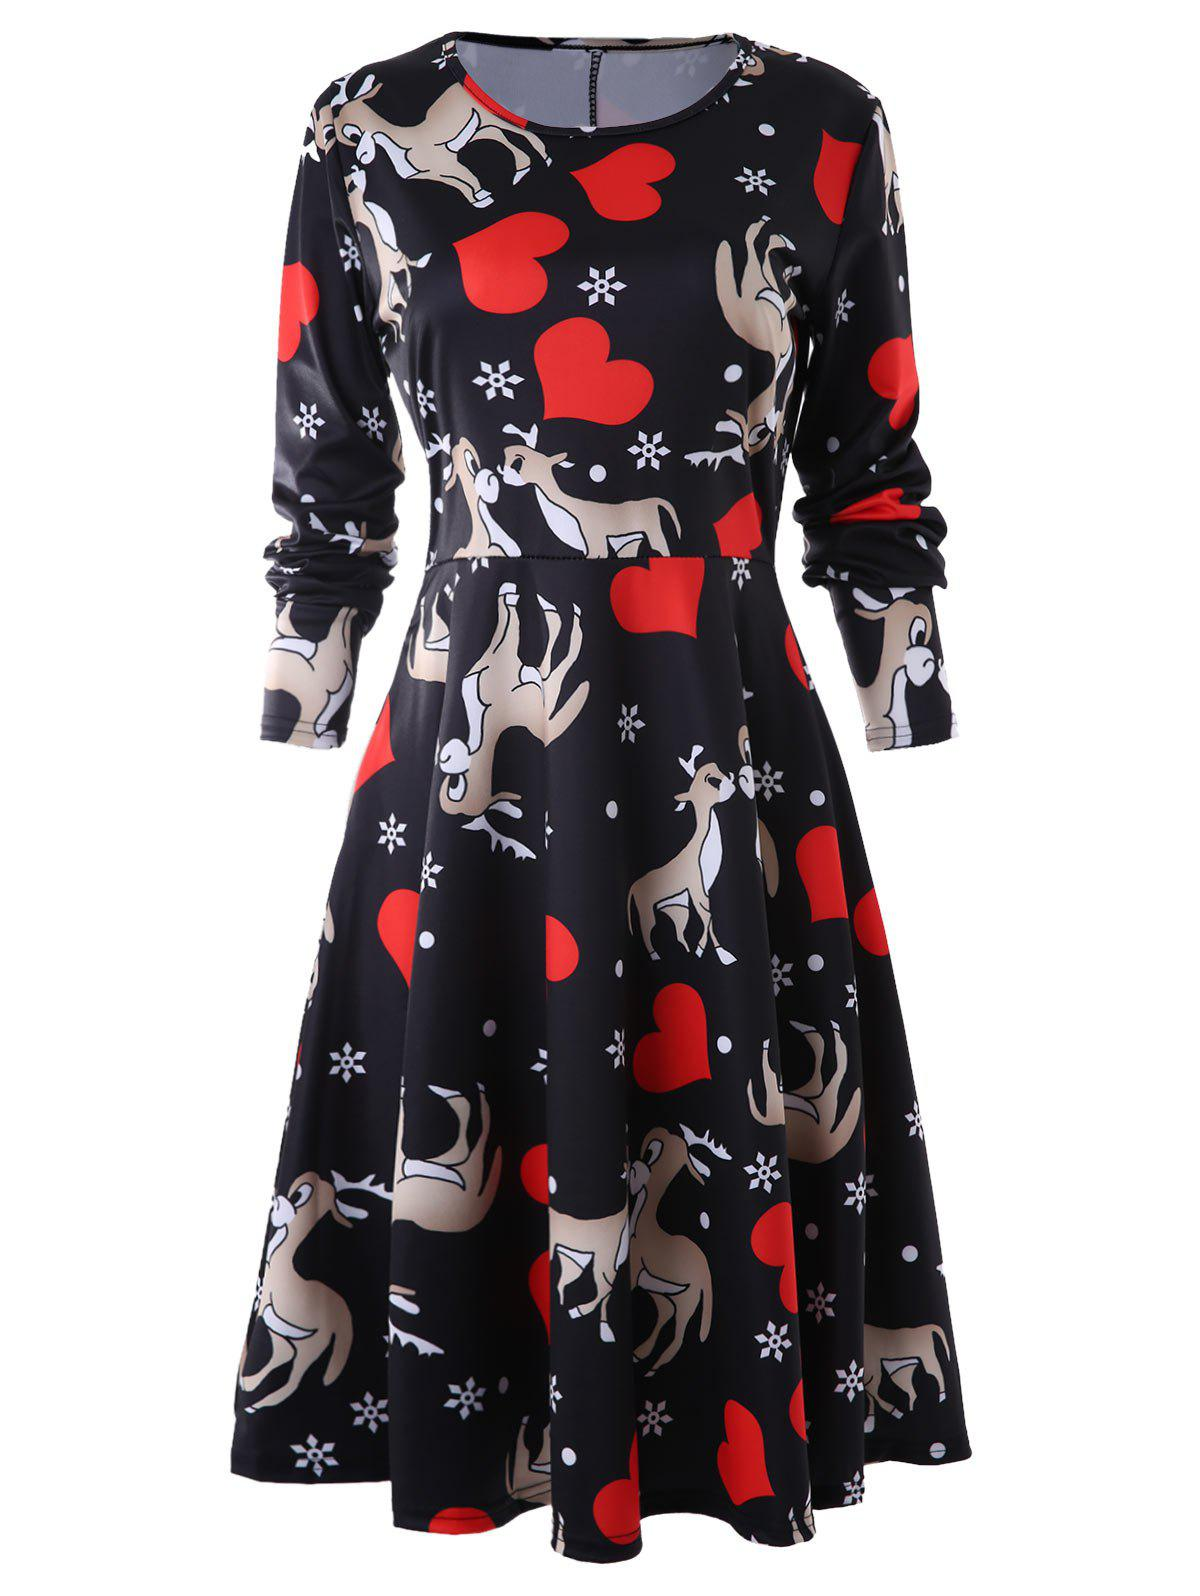 Heart Deer Print Sewing Dress